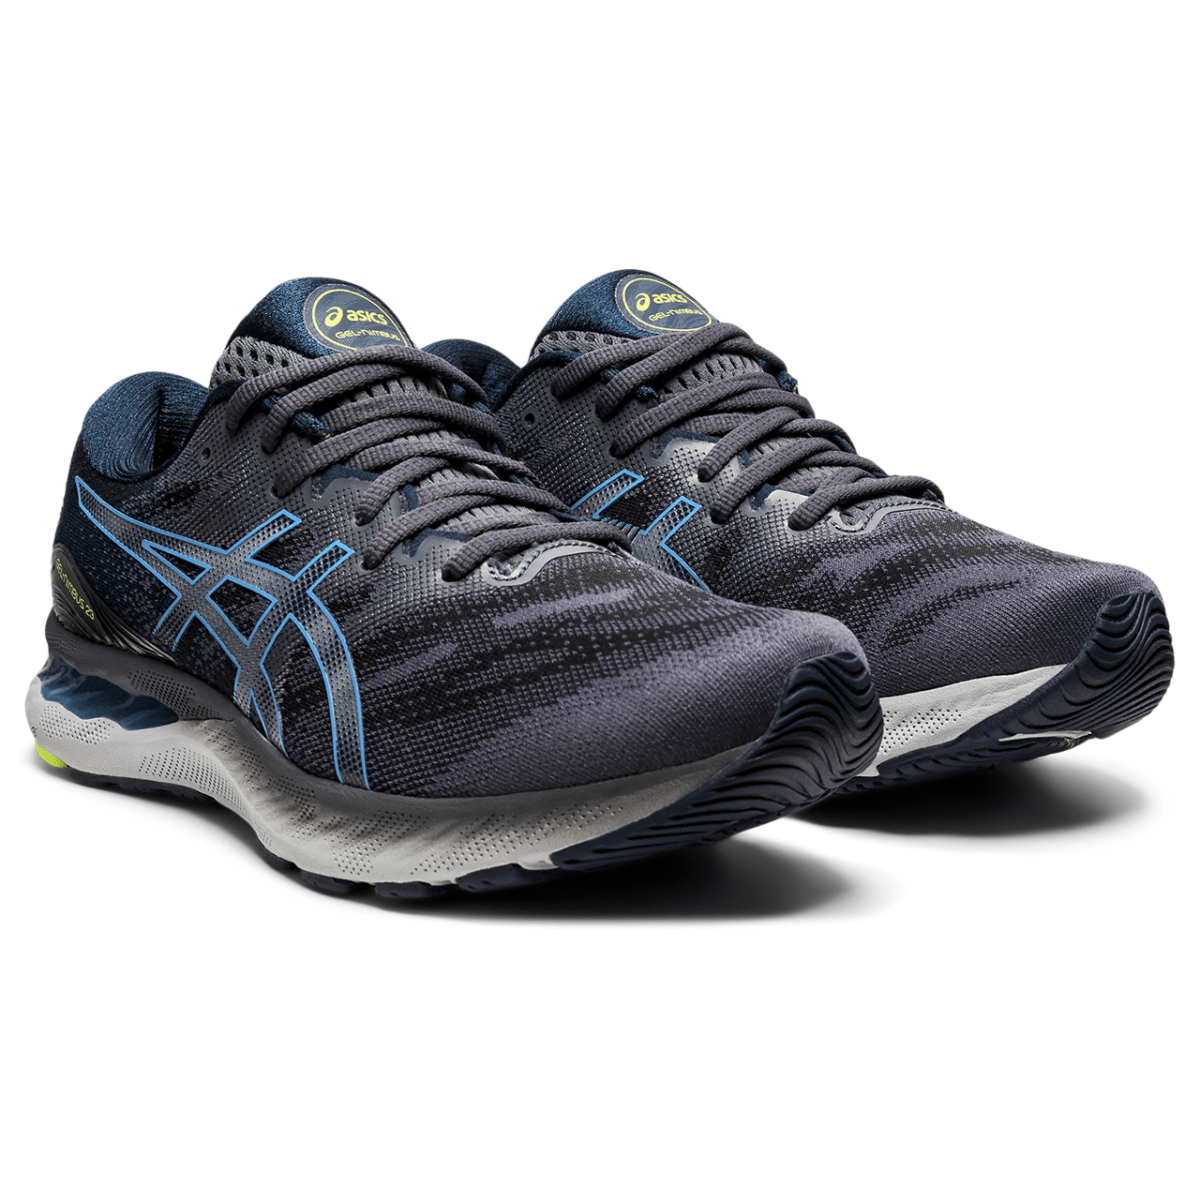 Asics Gel-Nimbus 23 M 2021 (Carrier Grey/Digital Aqua)